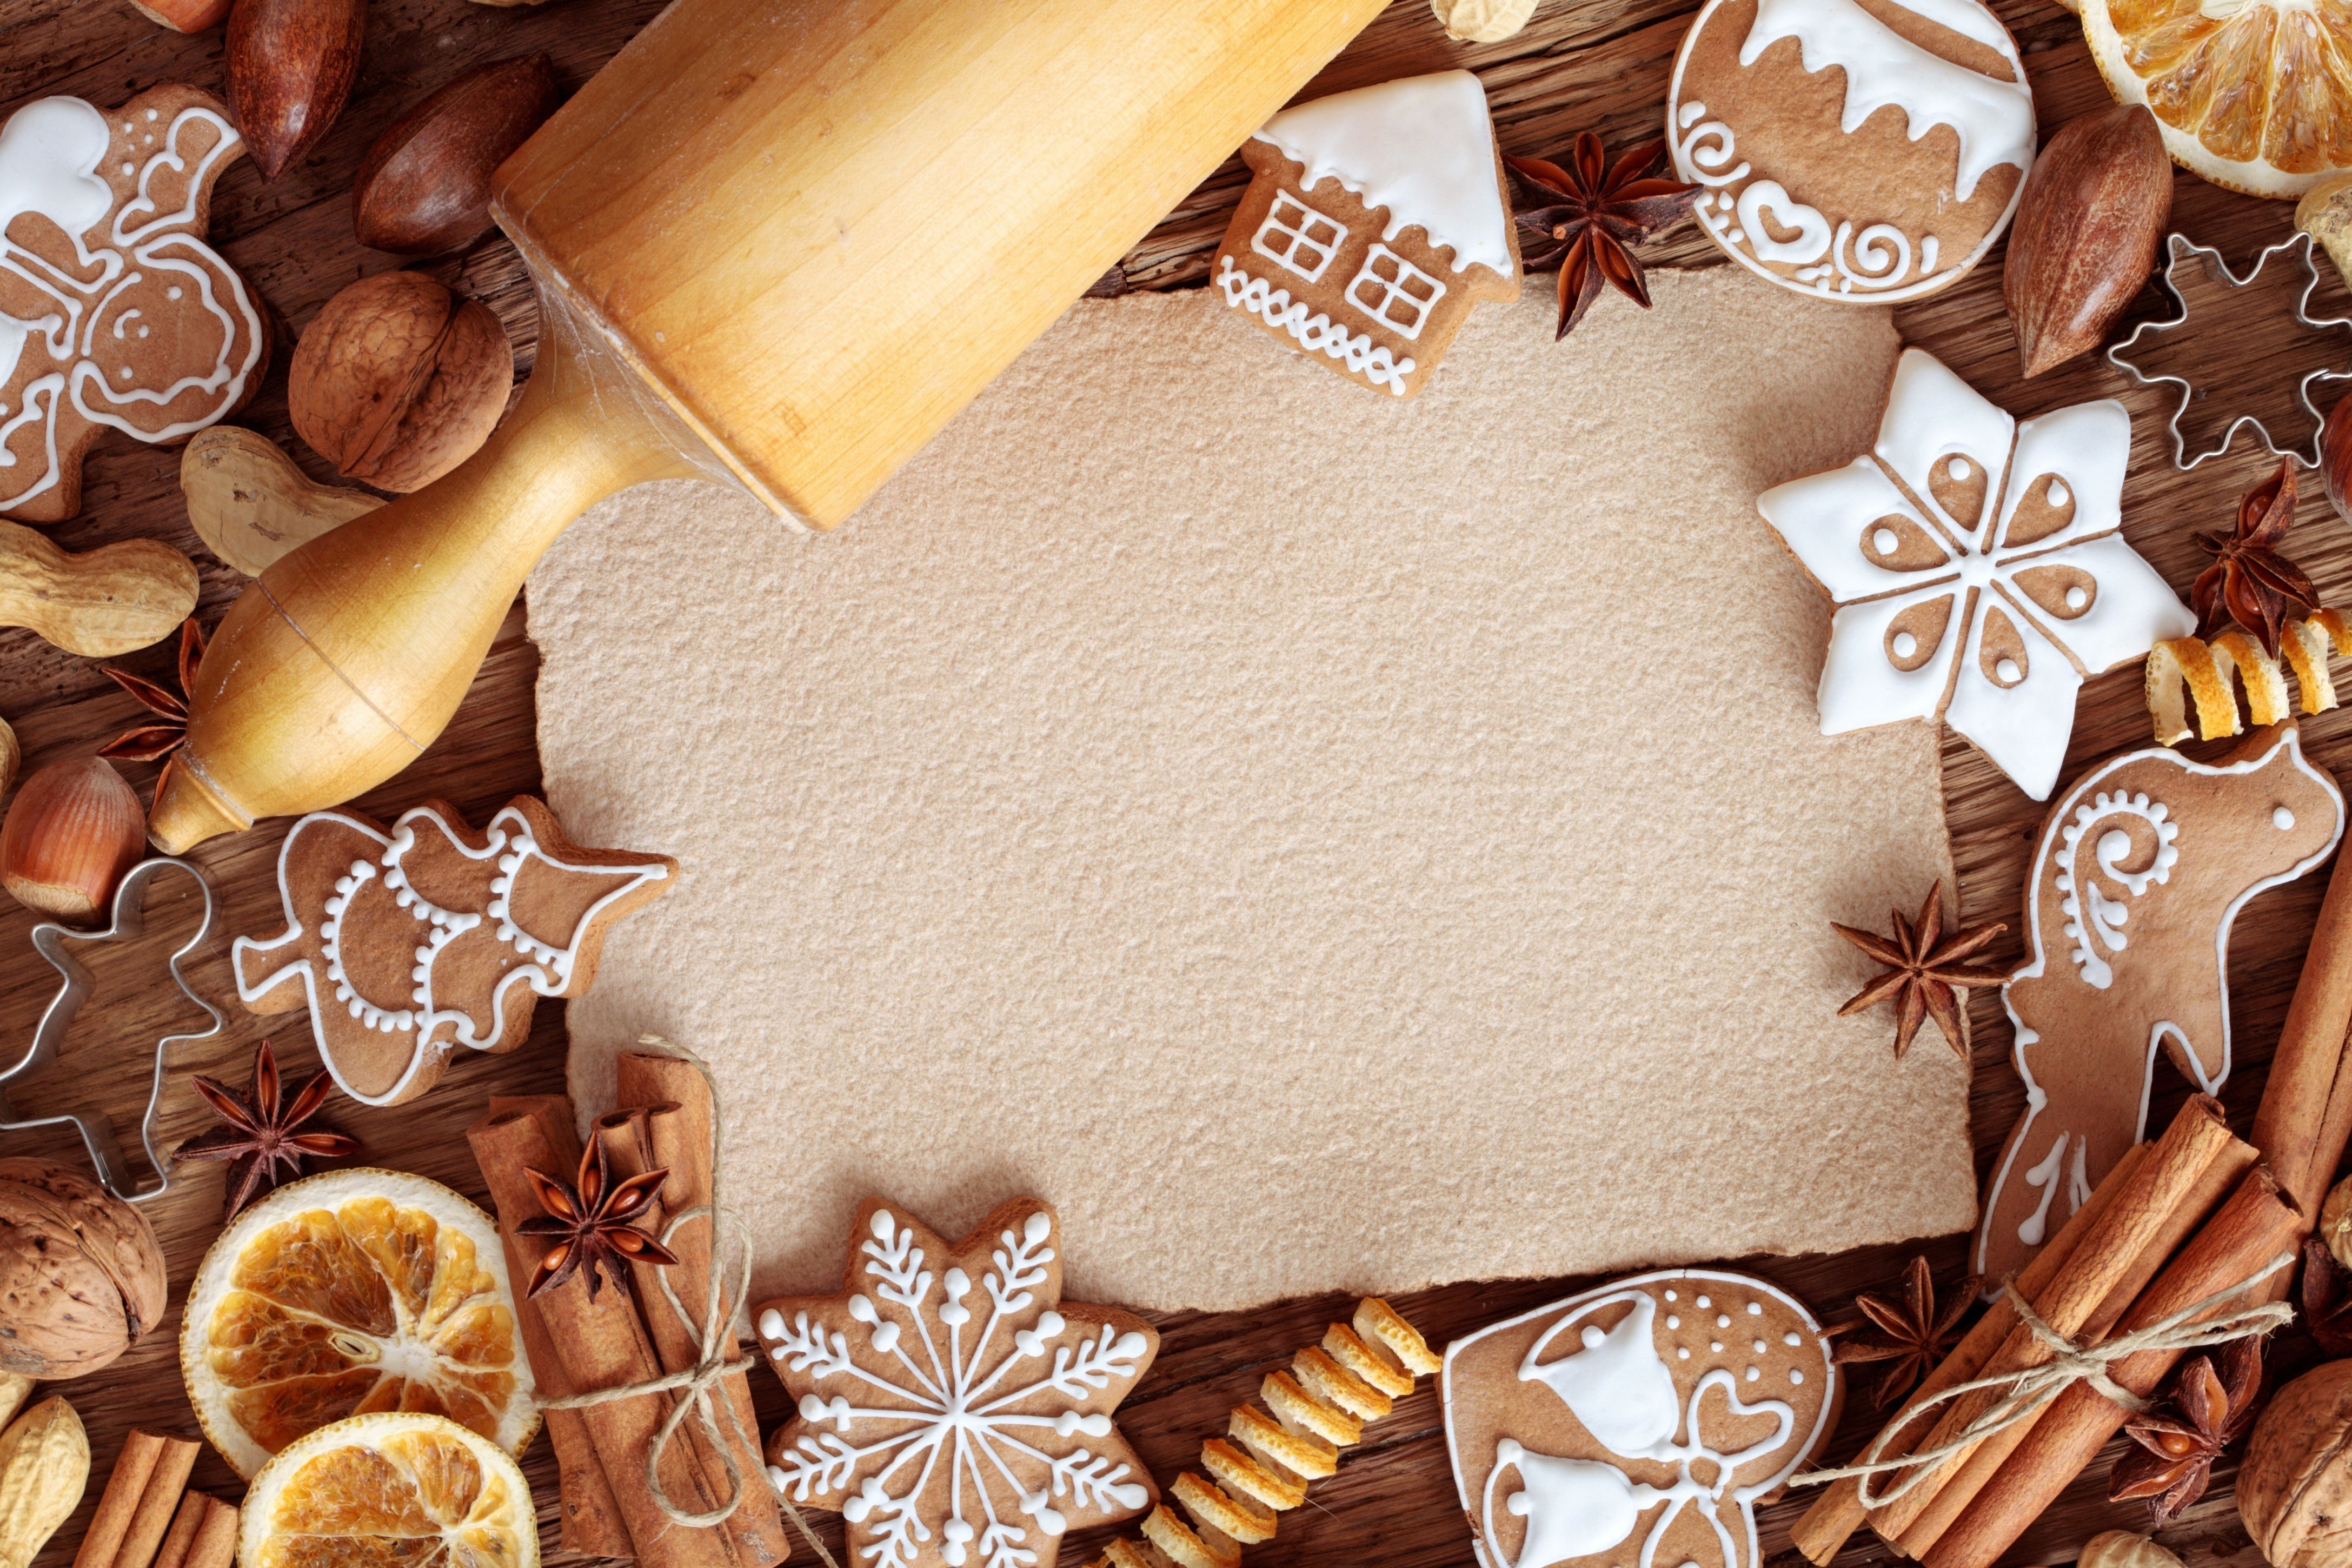 Christmas Food 4k Ultra HD Wallpaper | Background Image | 4350x2900 ...